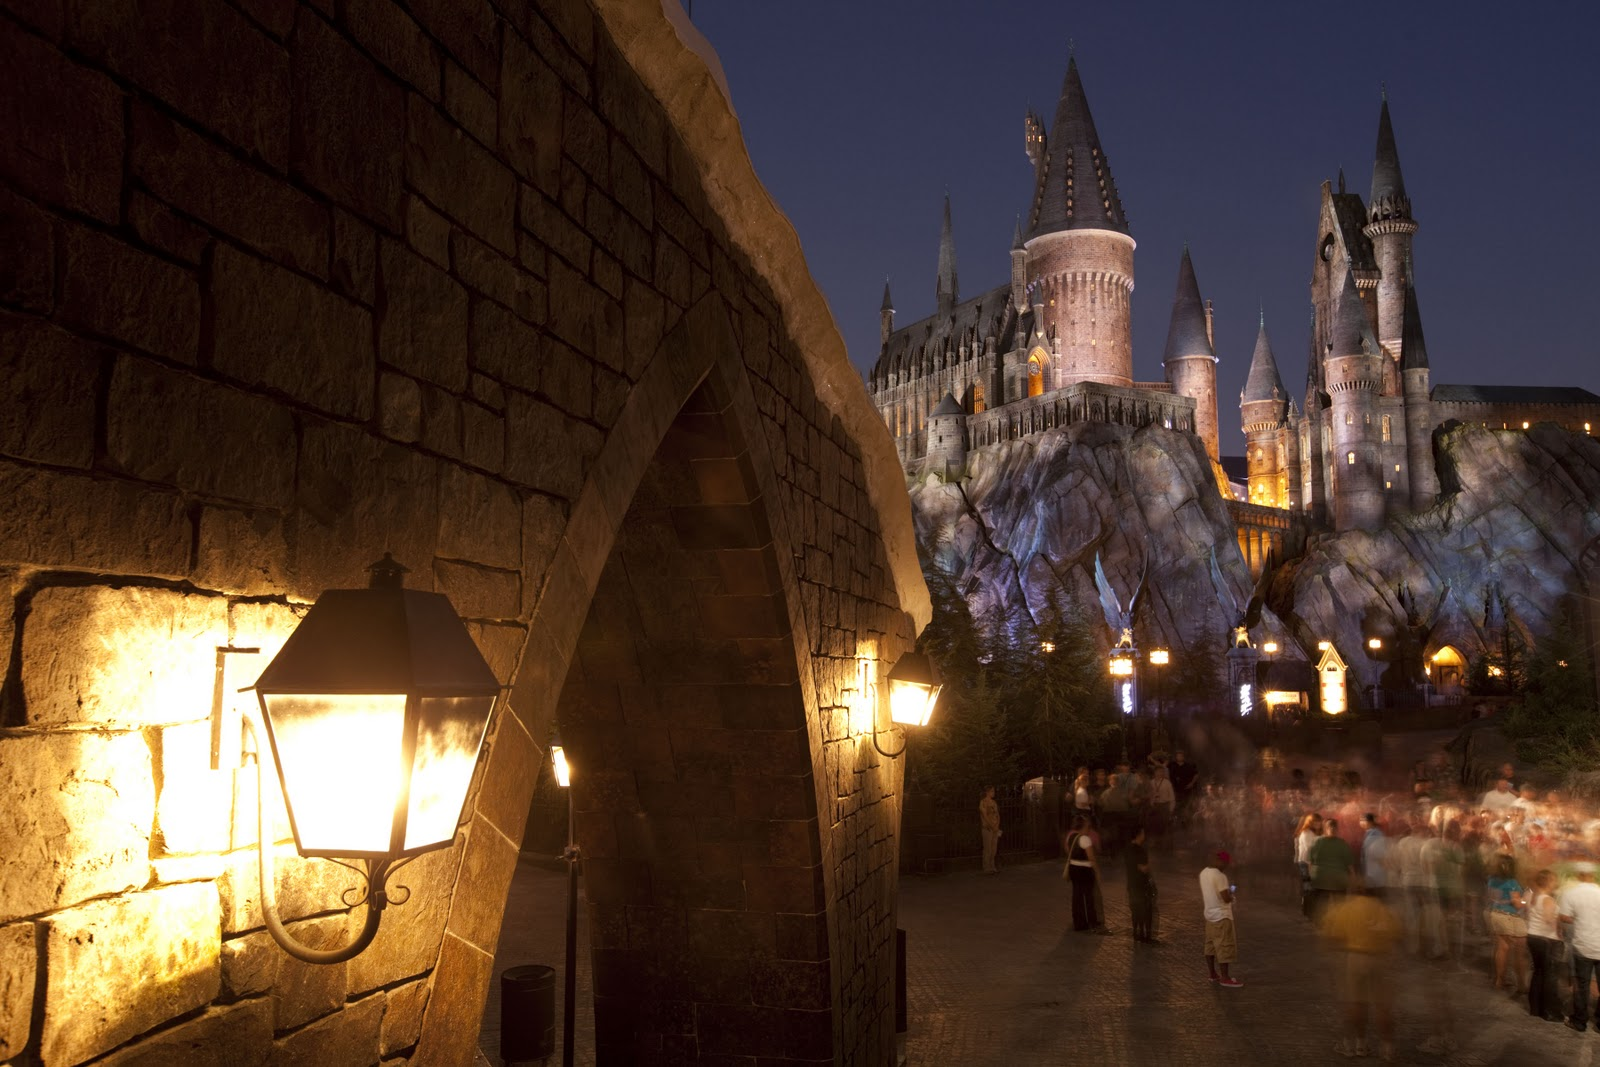 Hogwarts Castle at night. Photo: Universal Orlando Resort